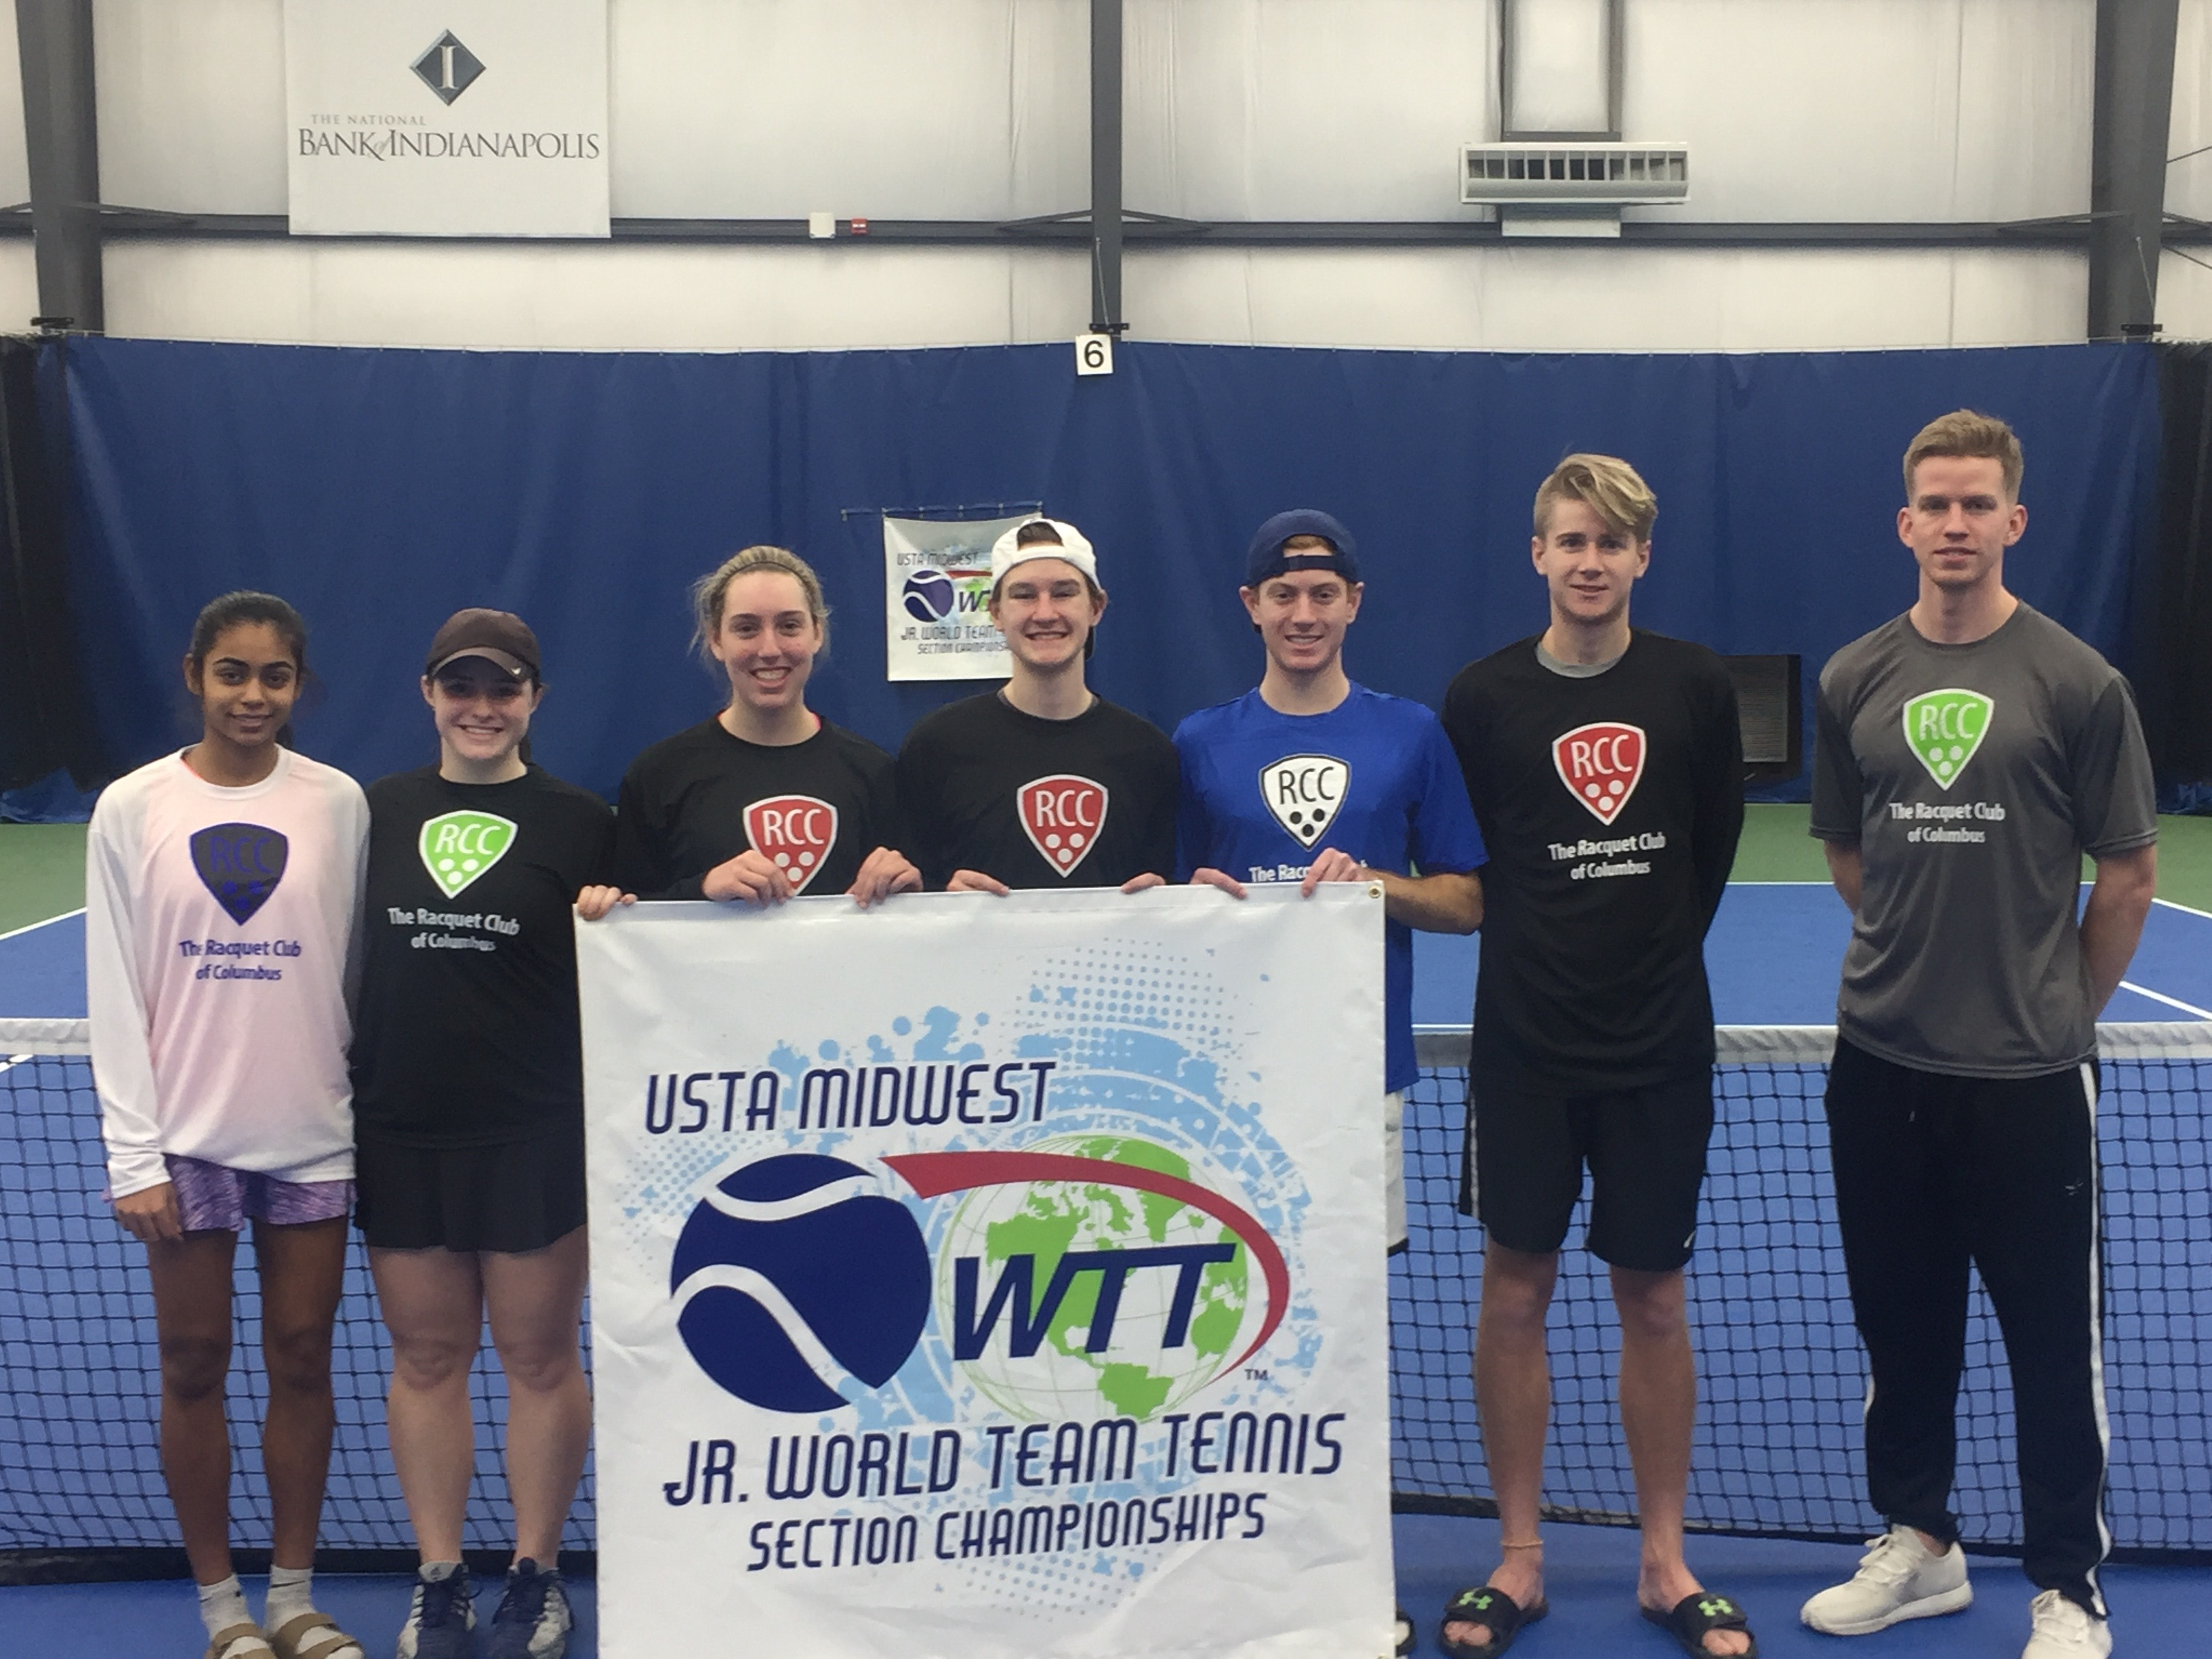 Junior World Team Tennis Midwest Champions